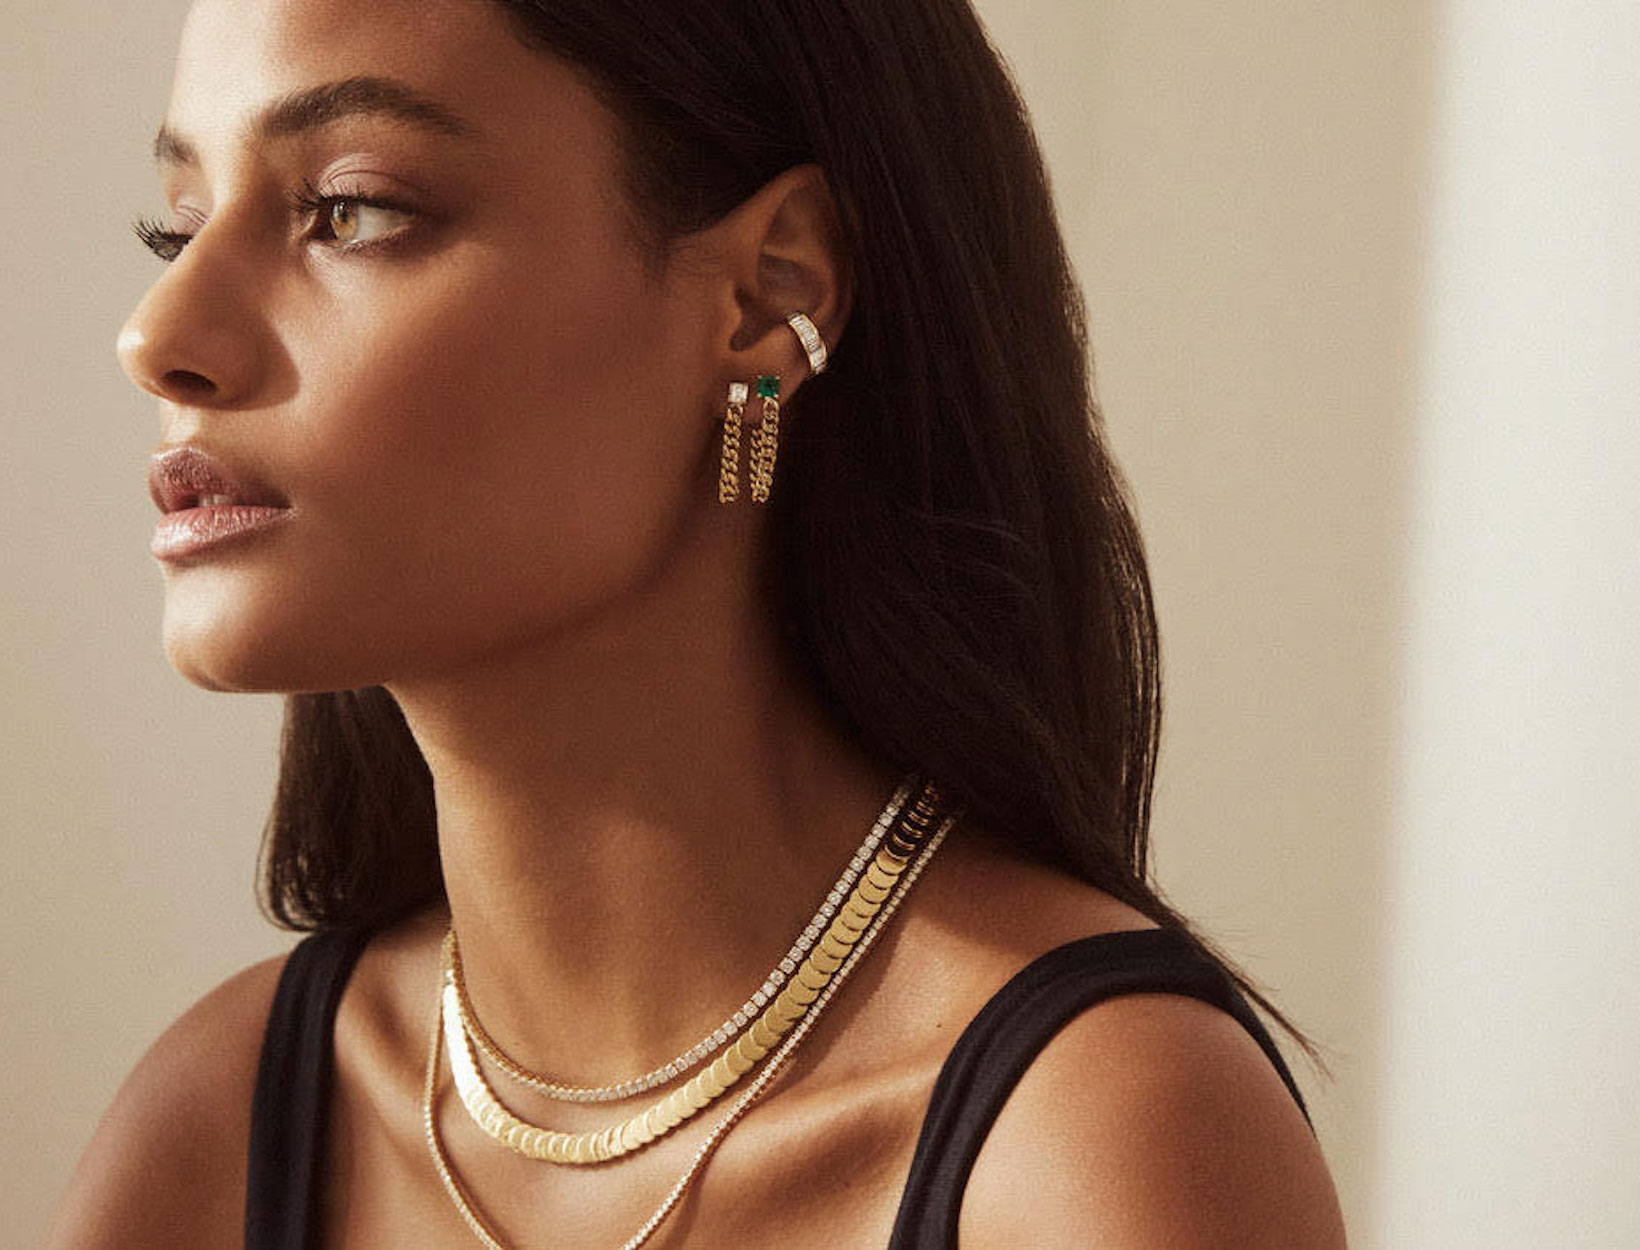 One Jeweler's Guide to Perfecting Your Ear Game